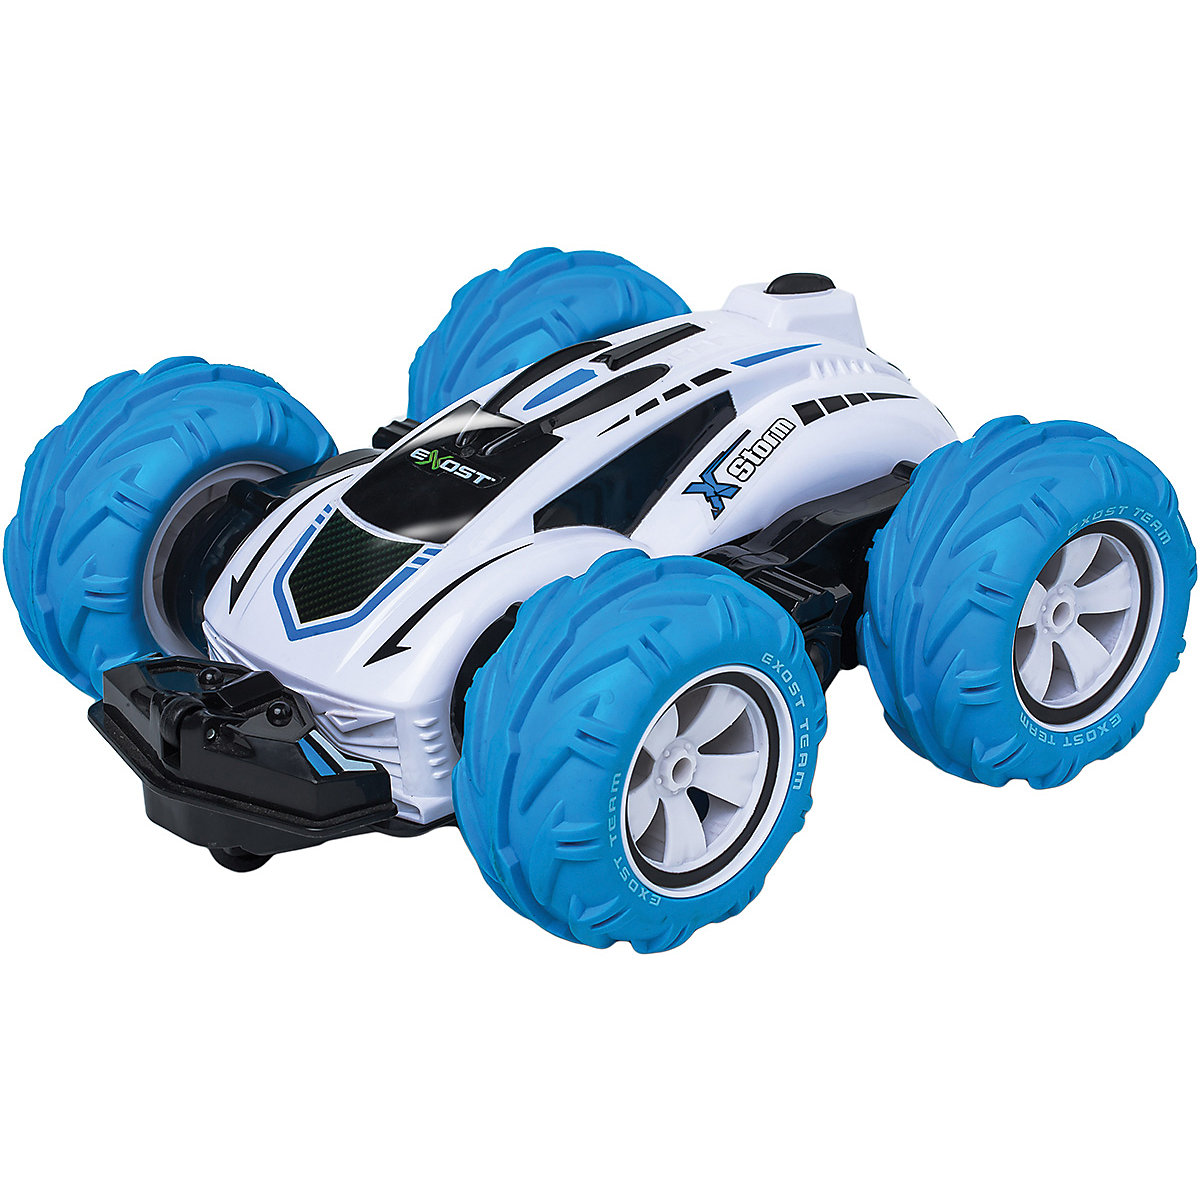 Silverlit RC Cars 10077751 Remote Control Toys radio-controlled toy games children Kids car spare mr rc m 1503 servo for remote control helicopter car boat